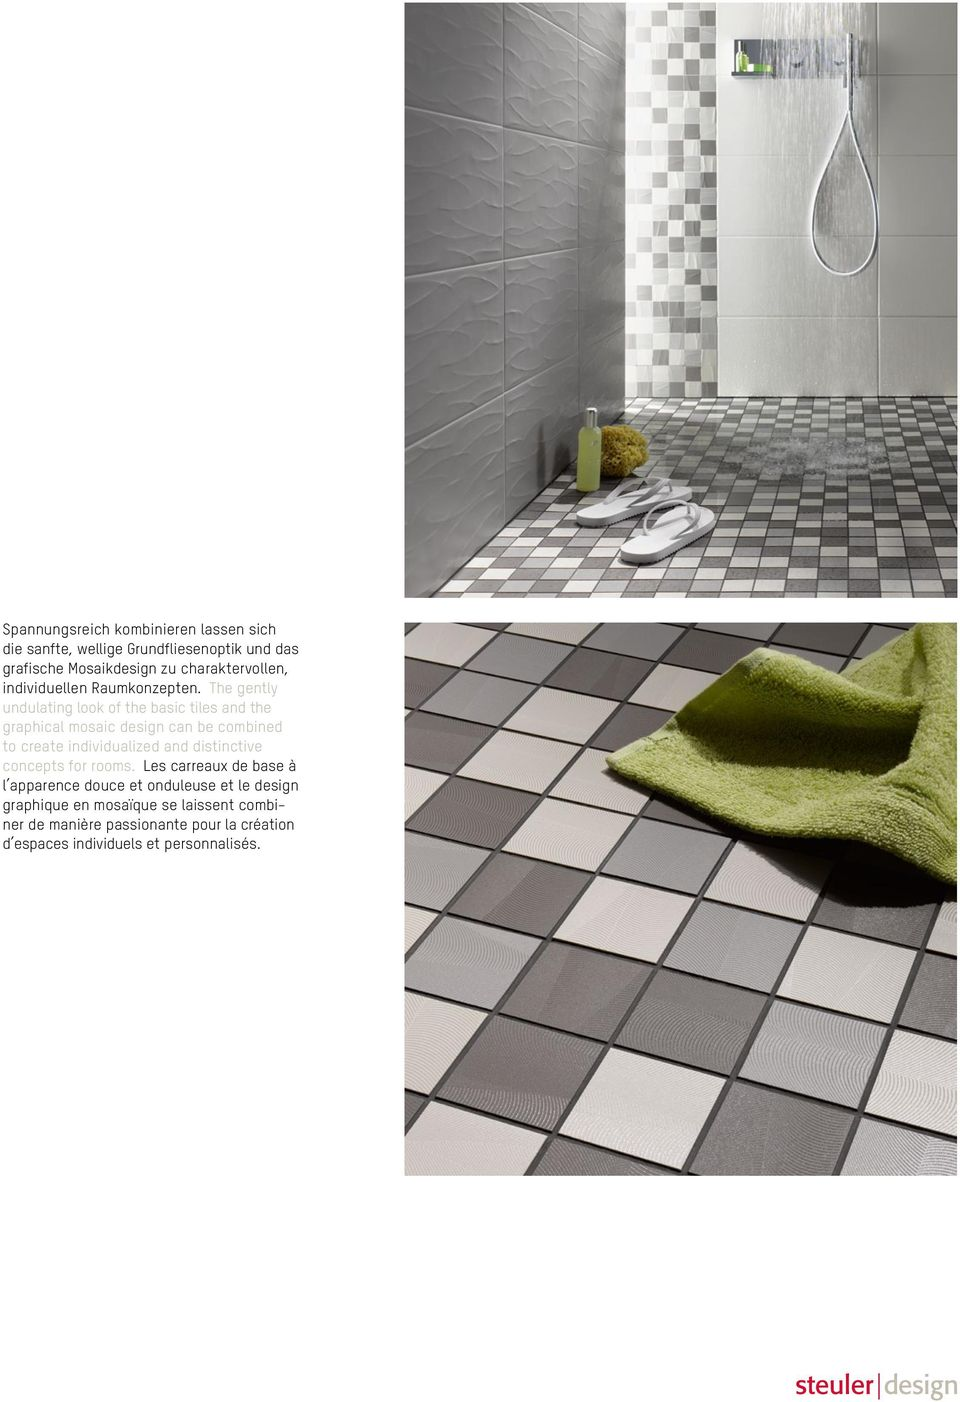 The gently undulating look of the basic tiles and the graphical mosaic design can be combined to create individualized and